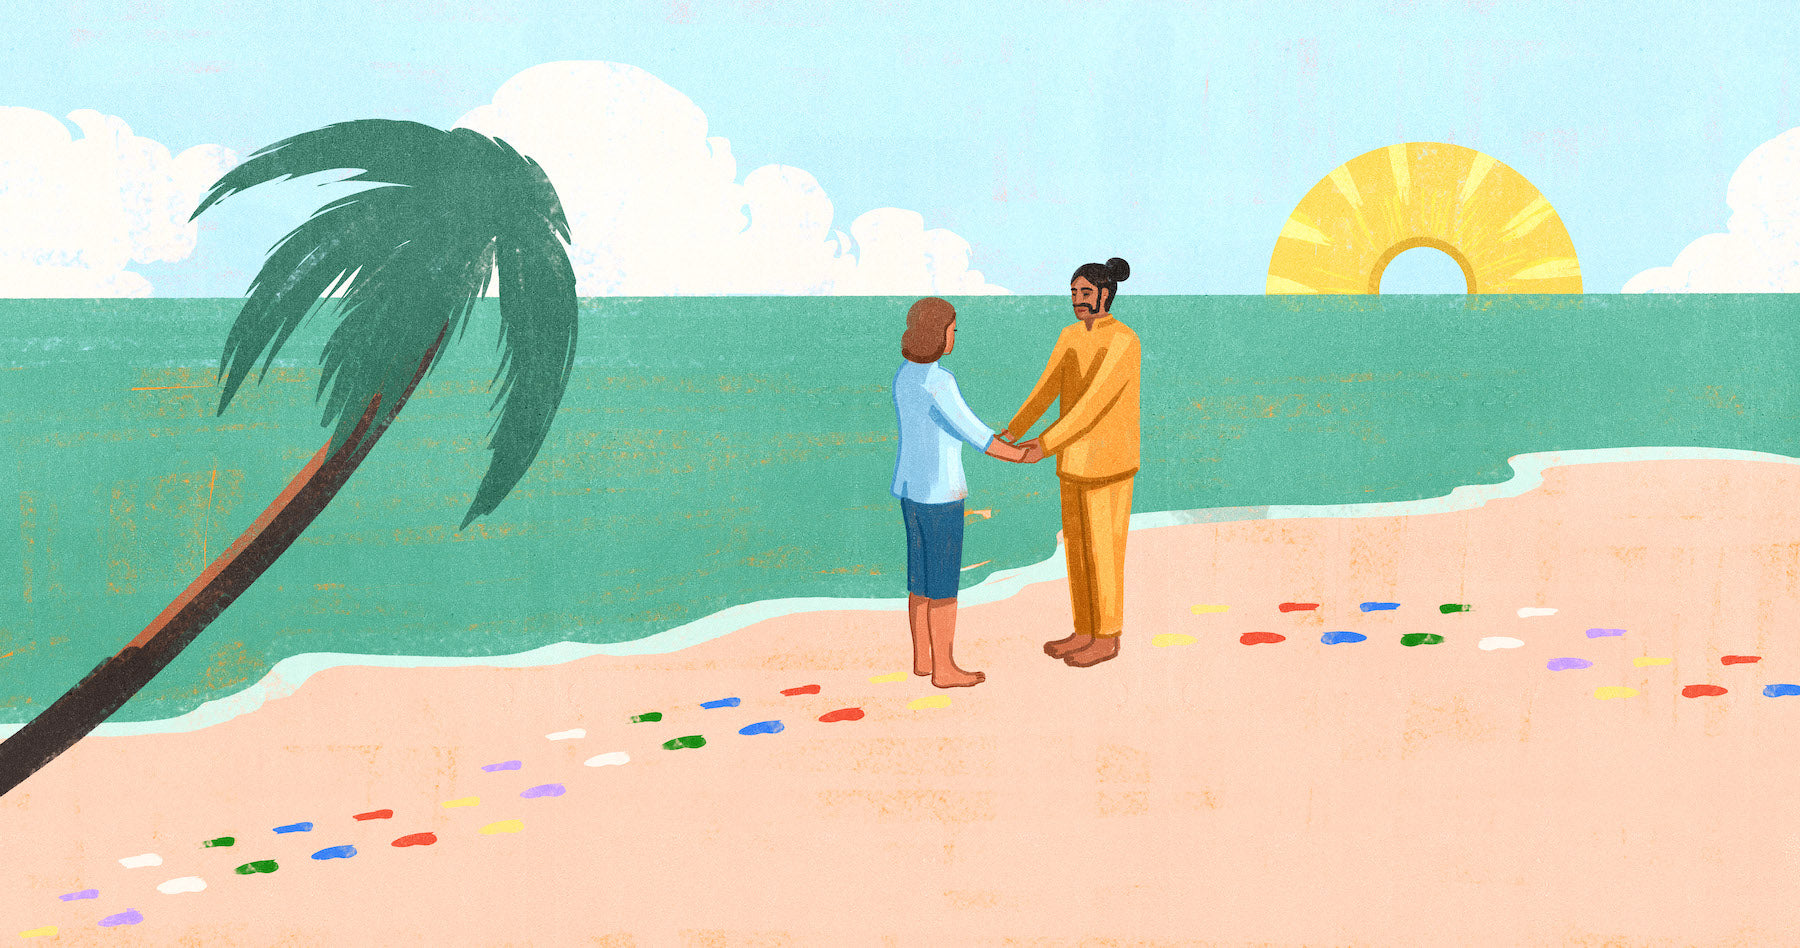 Illustration of a south asian man and a caucasian woman standing on a Sri Lankan beach facing each other holding hands with a palm tree in the foreground leaning towards them. The half sun that is rising is a pineapple.